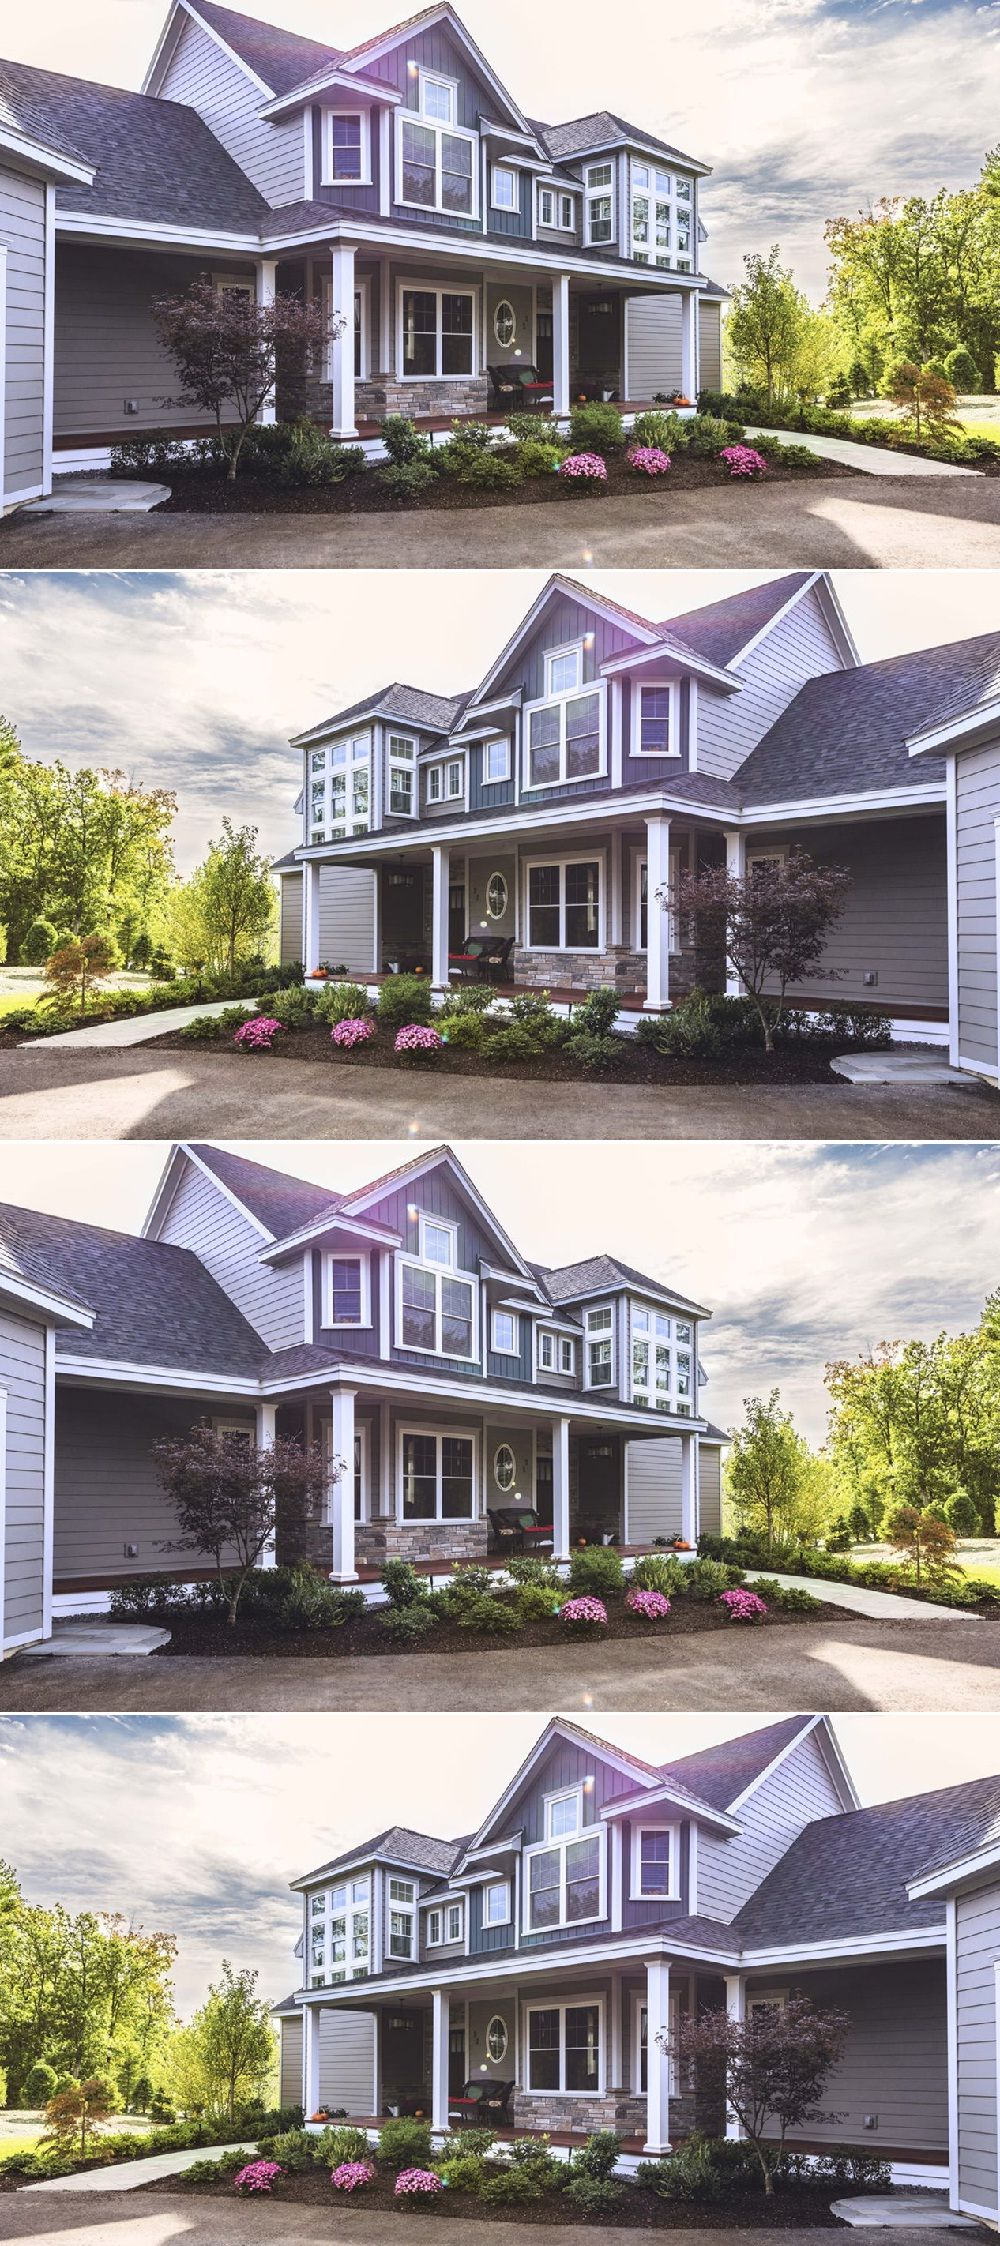 The Most Popular Exterior House Paint Colors For 2019 Exterior House Colors House Paint Exterior Exterior Paint Colors For House